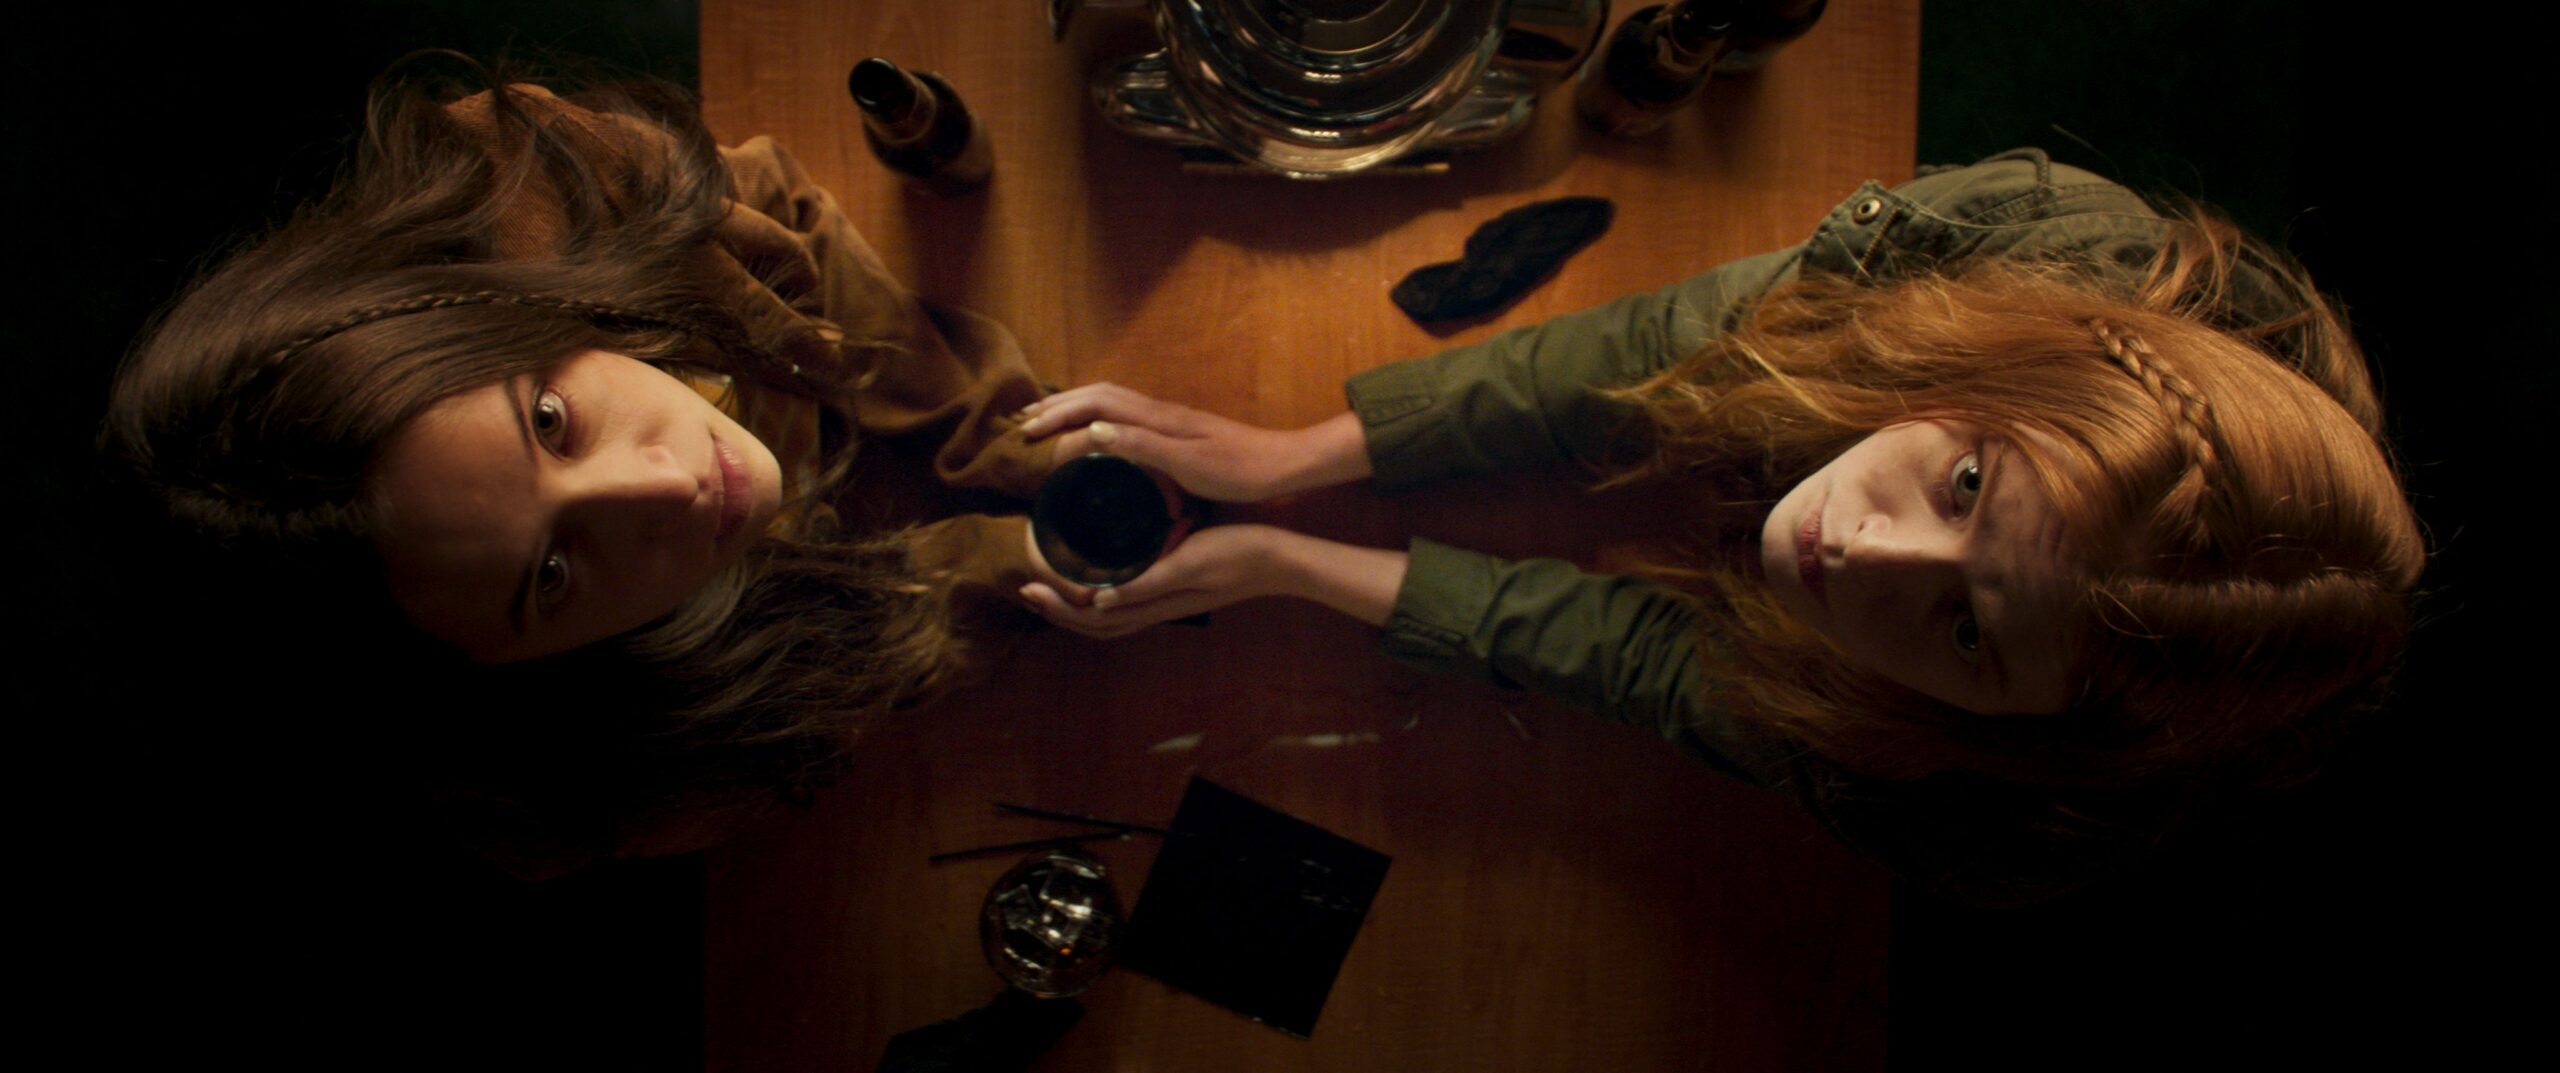 """Trailer Watch: Elle Callahan's """"Witch Hunt"""" Follows Witches in Peril"""